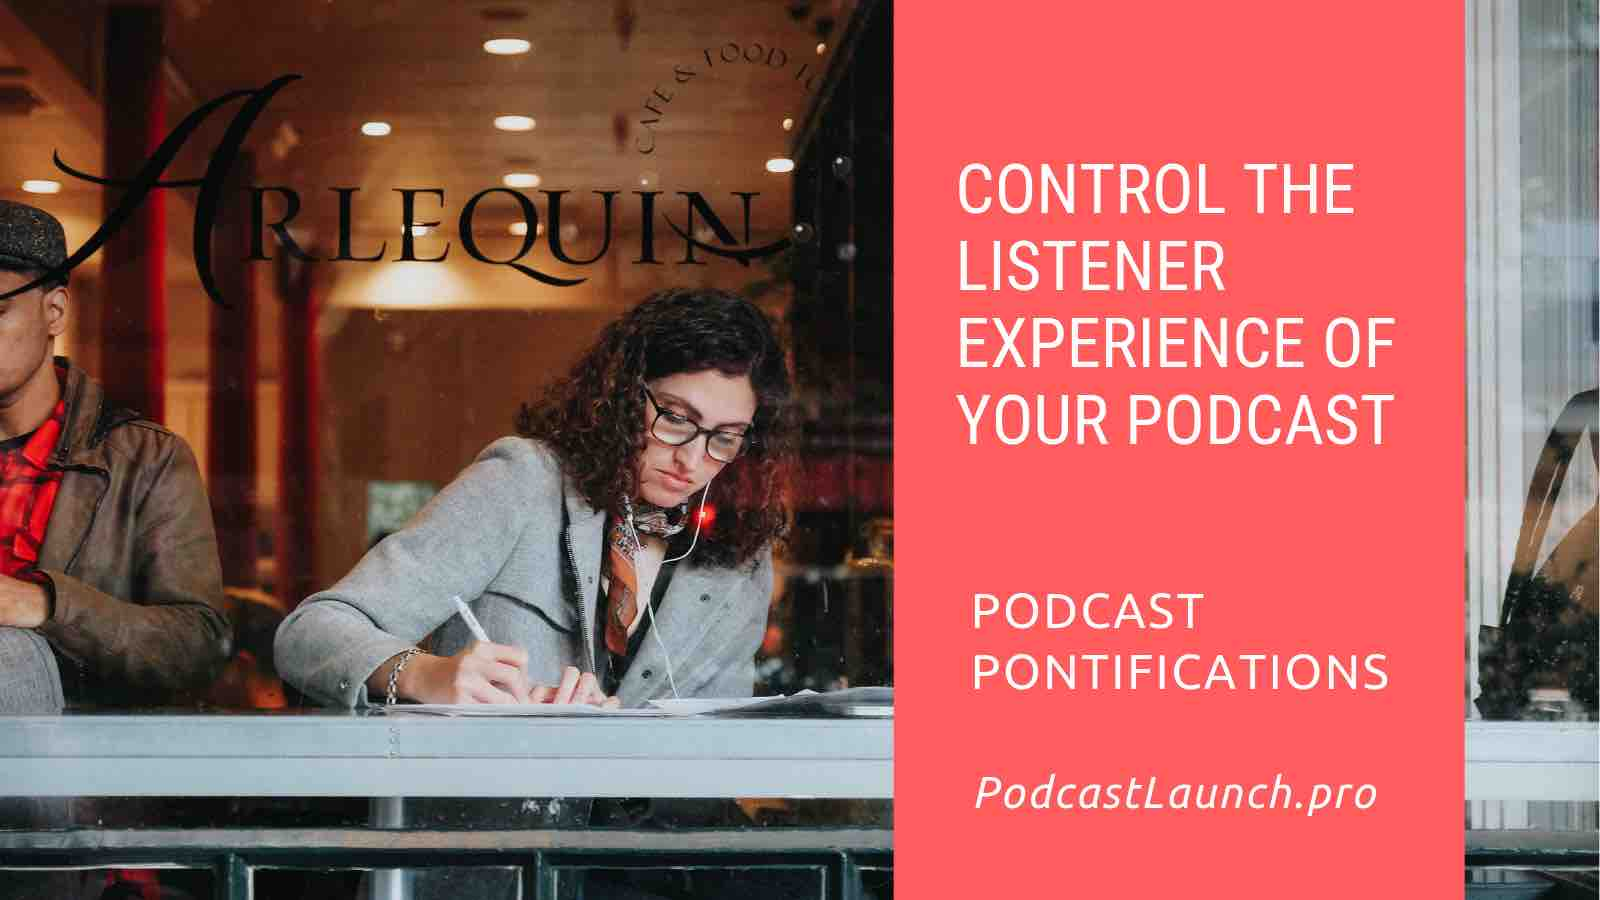 Control The Listener Experience Of Your Podcast